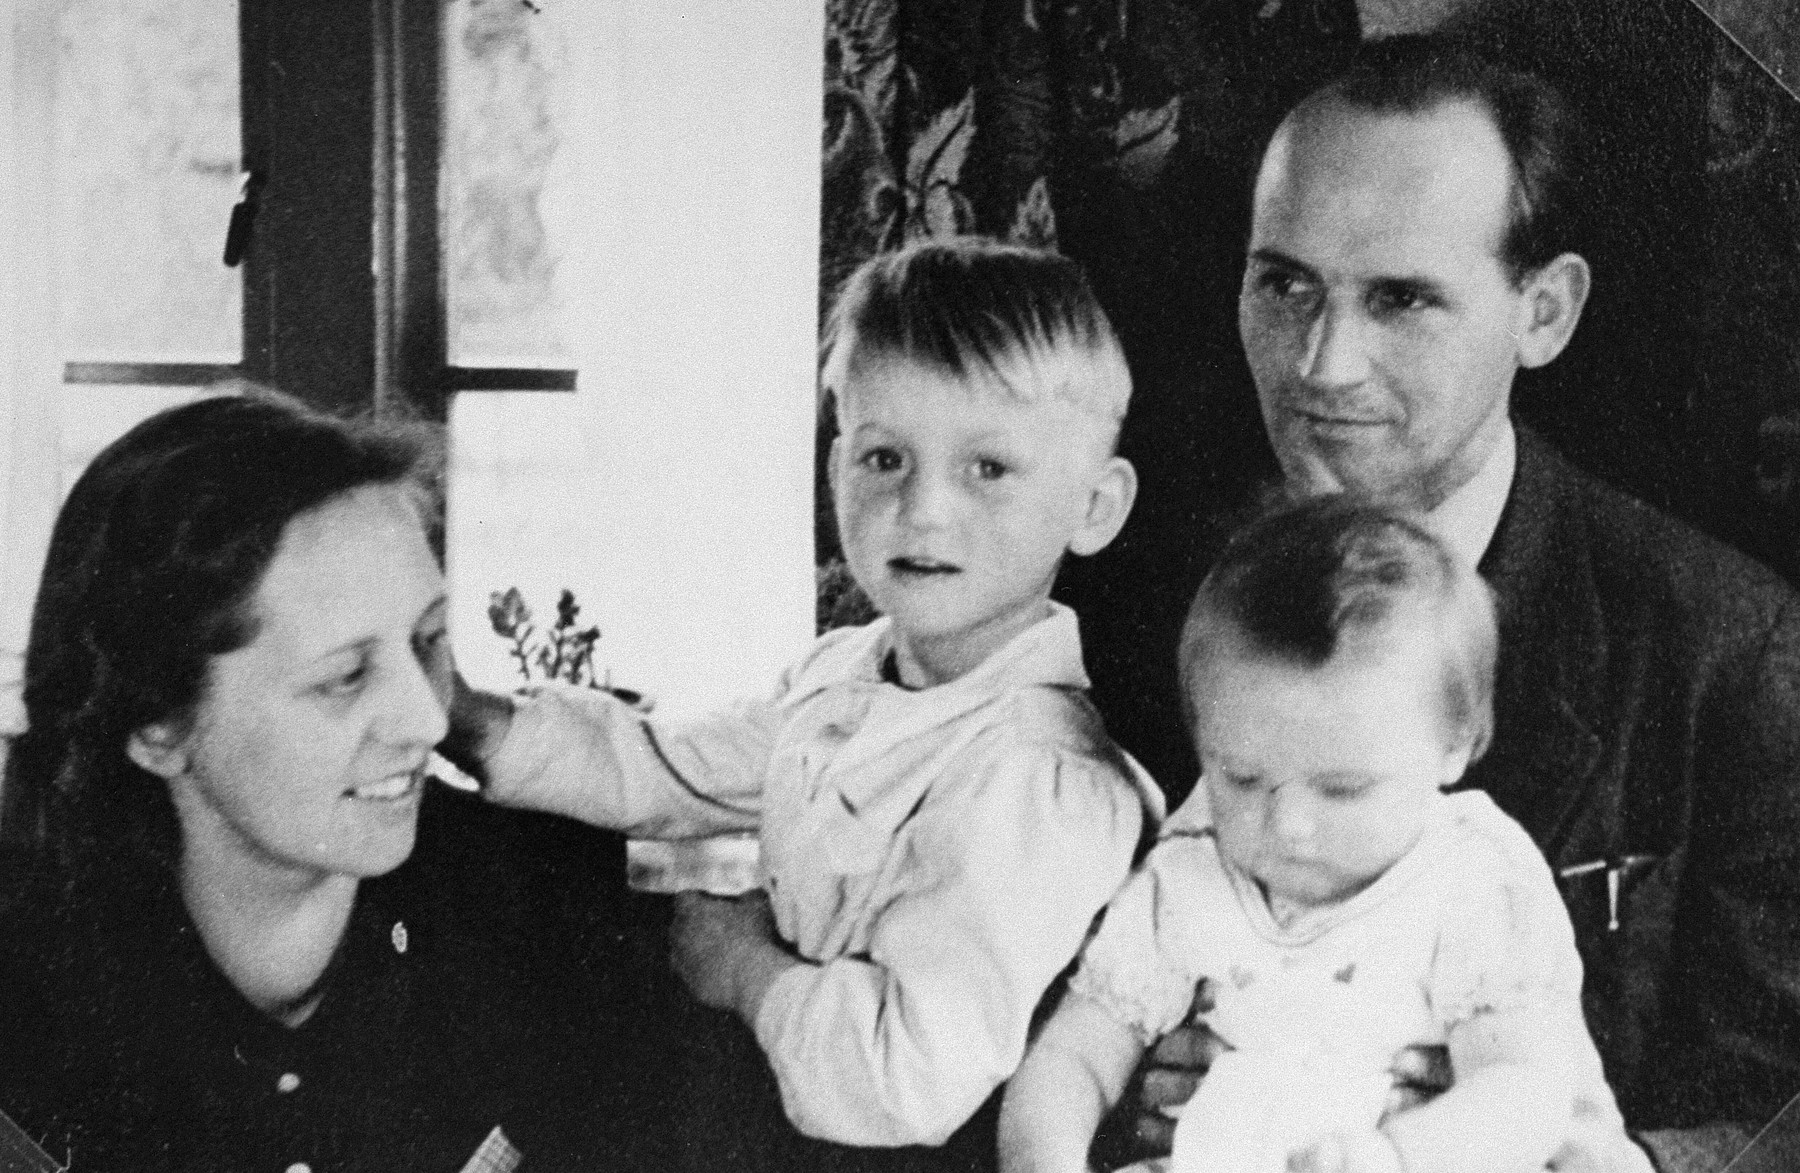 Bert Bochove with his first wife, Annie, and their children, Eric and Marise.